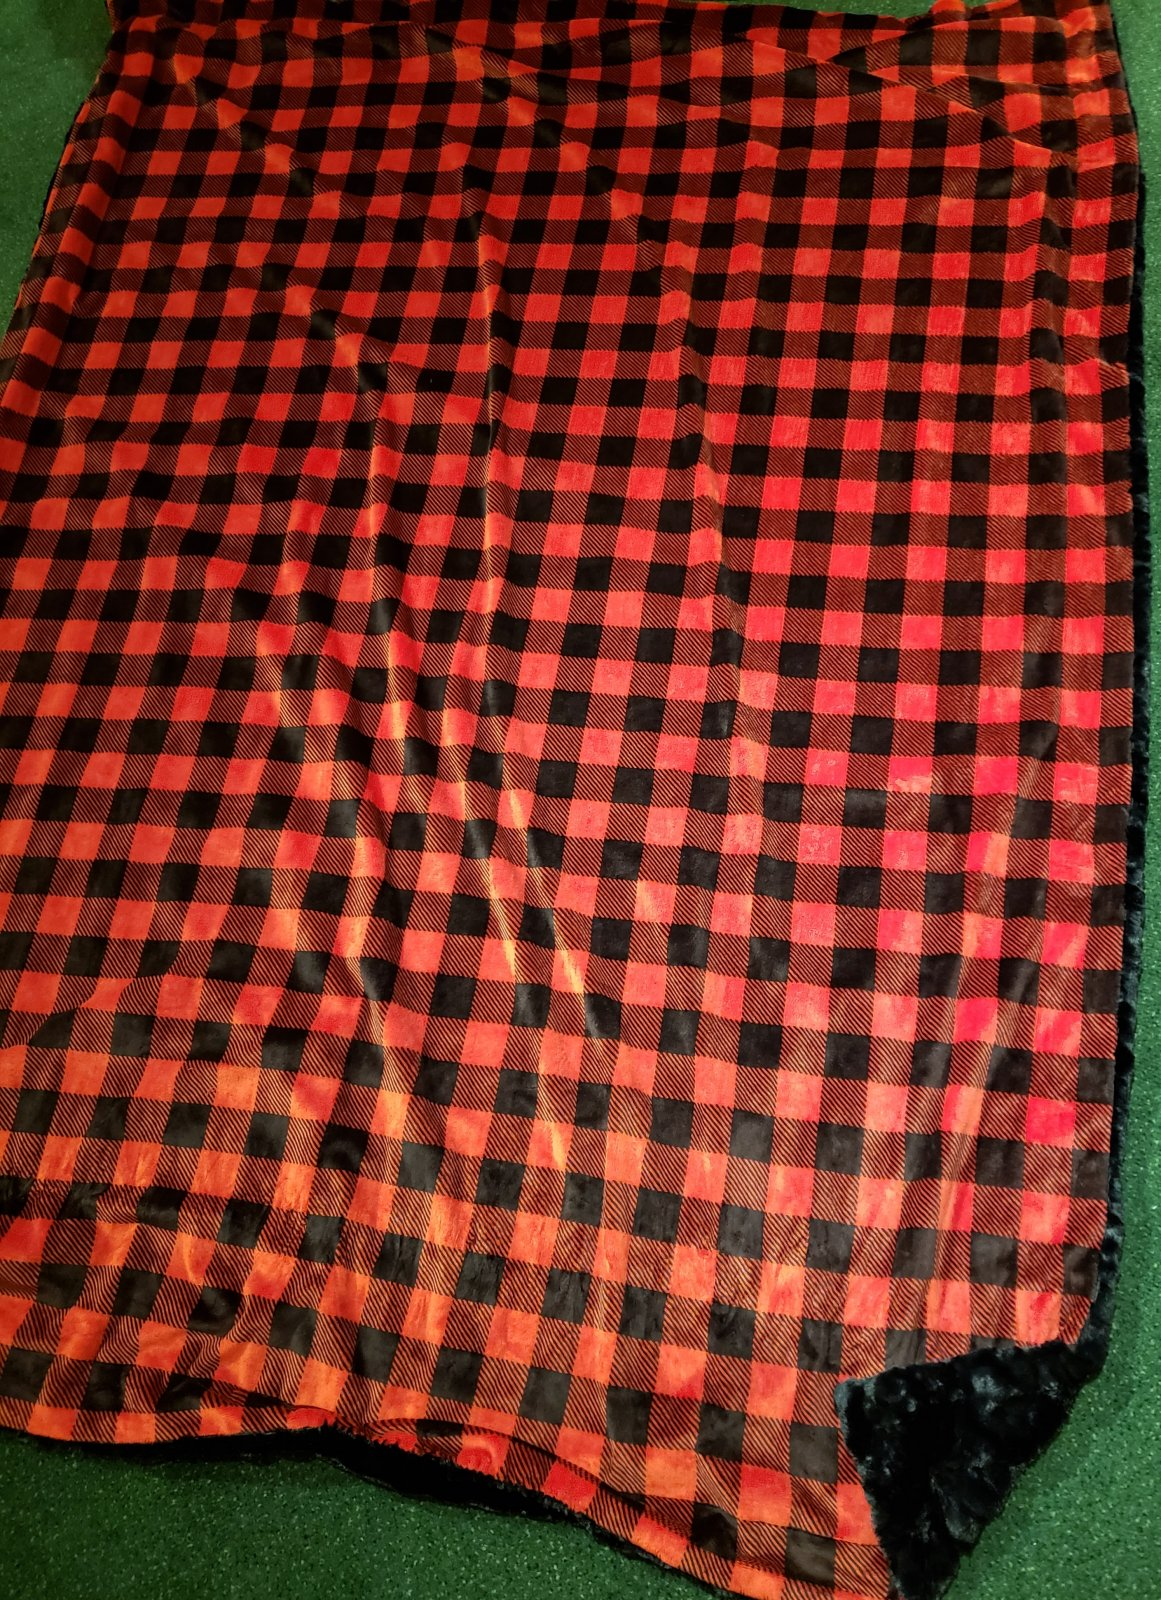 Luxe Cuddle Throw Cuddle Kit - Red Buffalo Check and Black